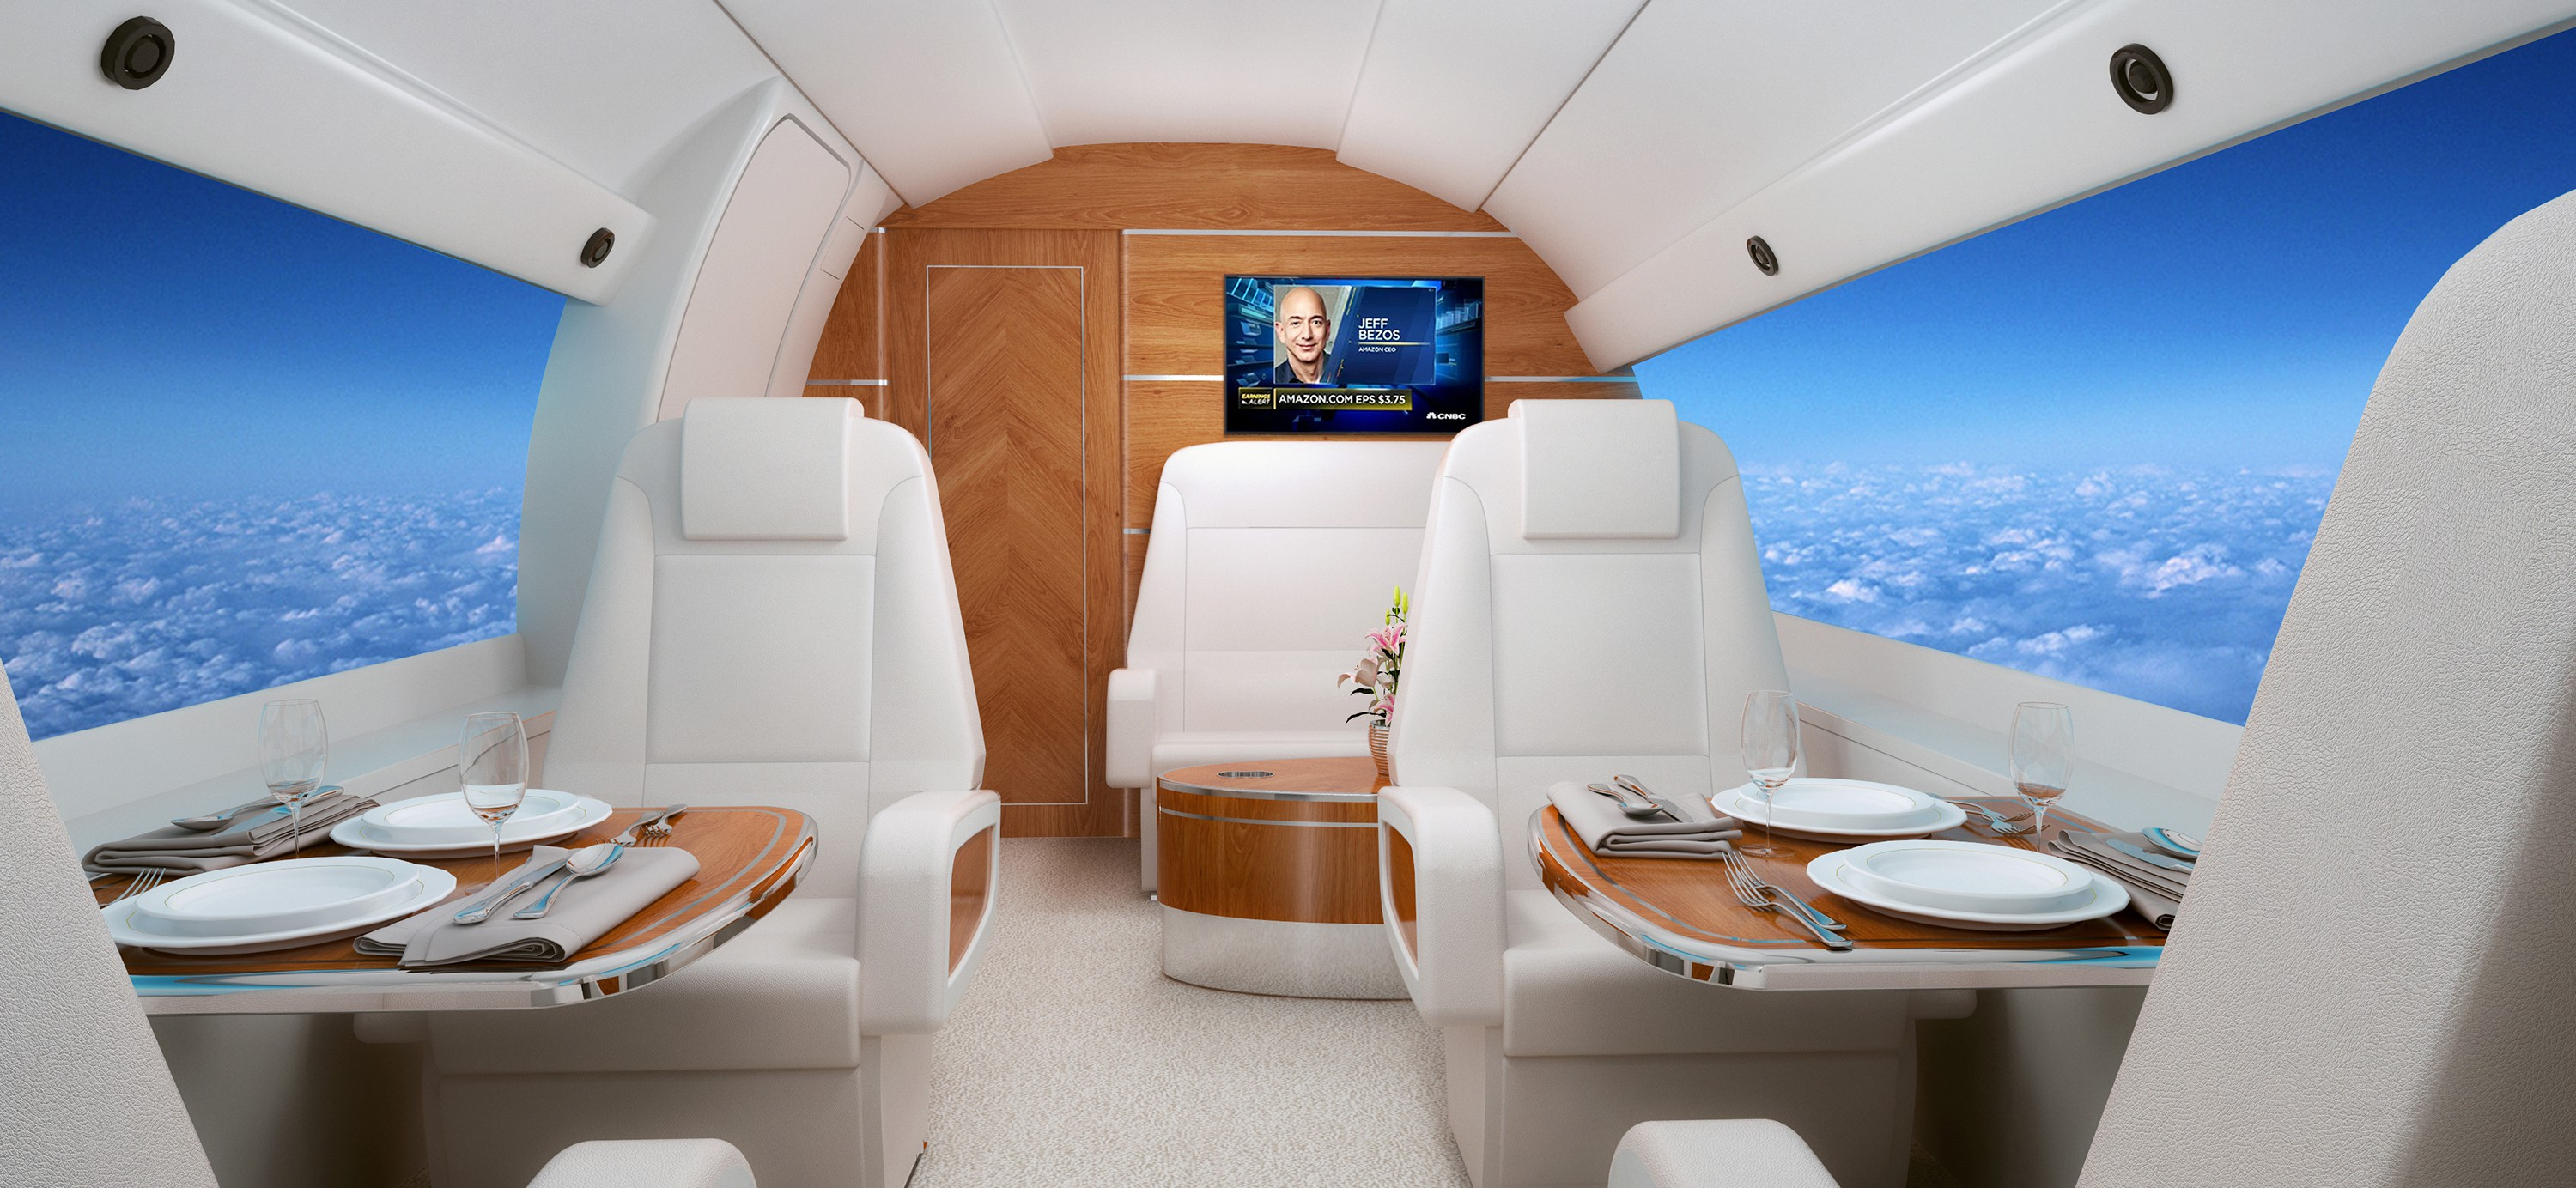 Design & Rendering for Jet Galley & Main Cabin